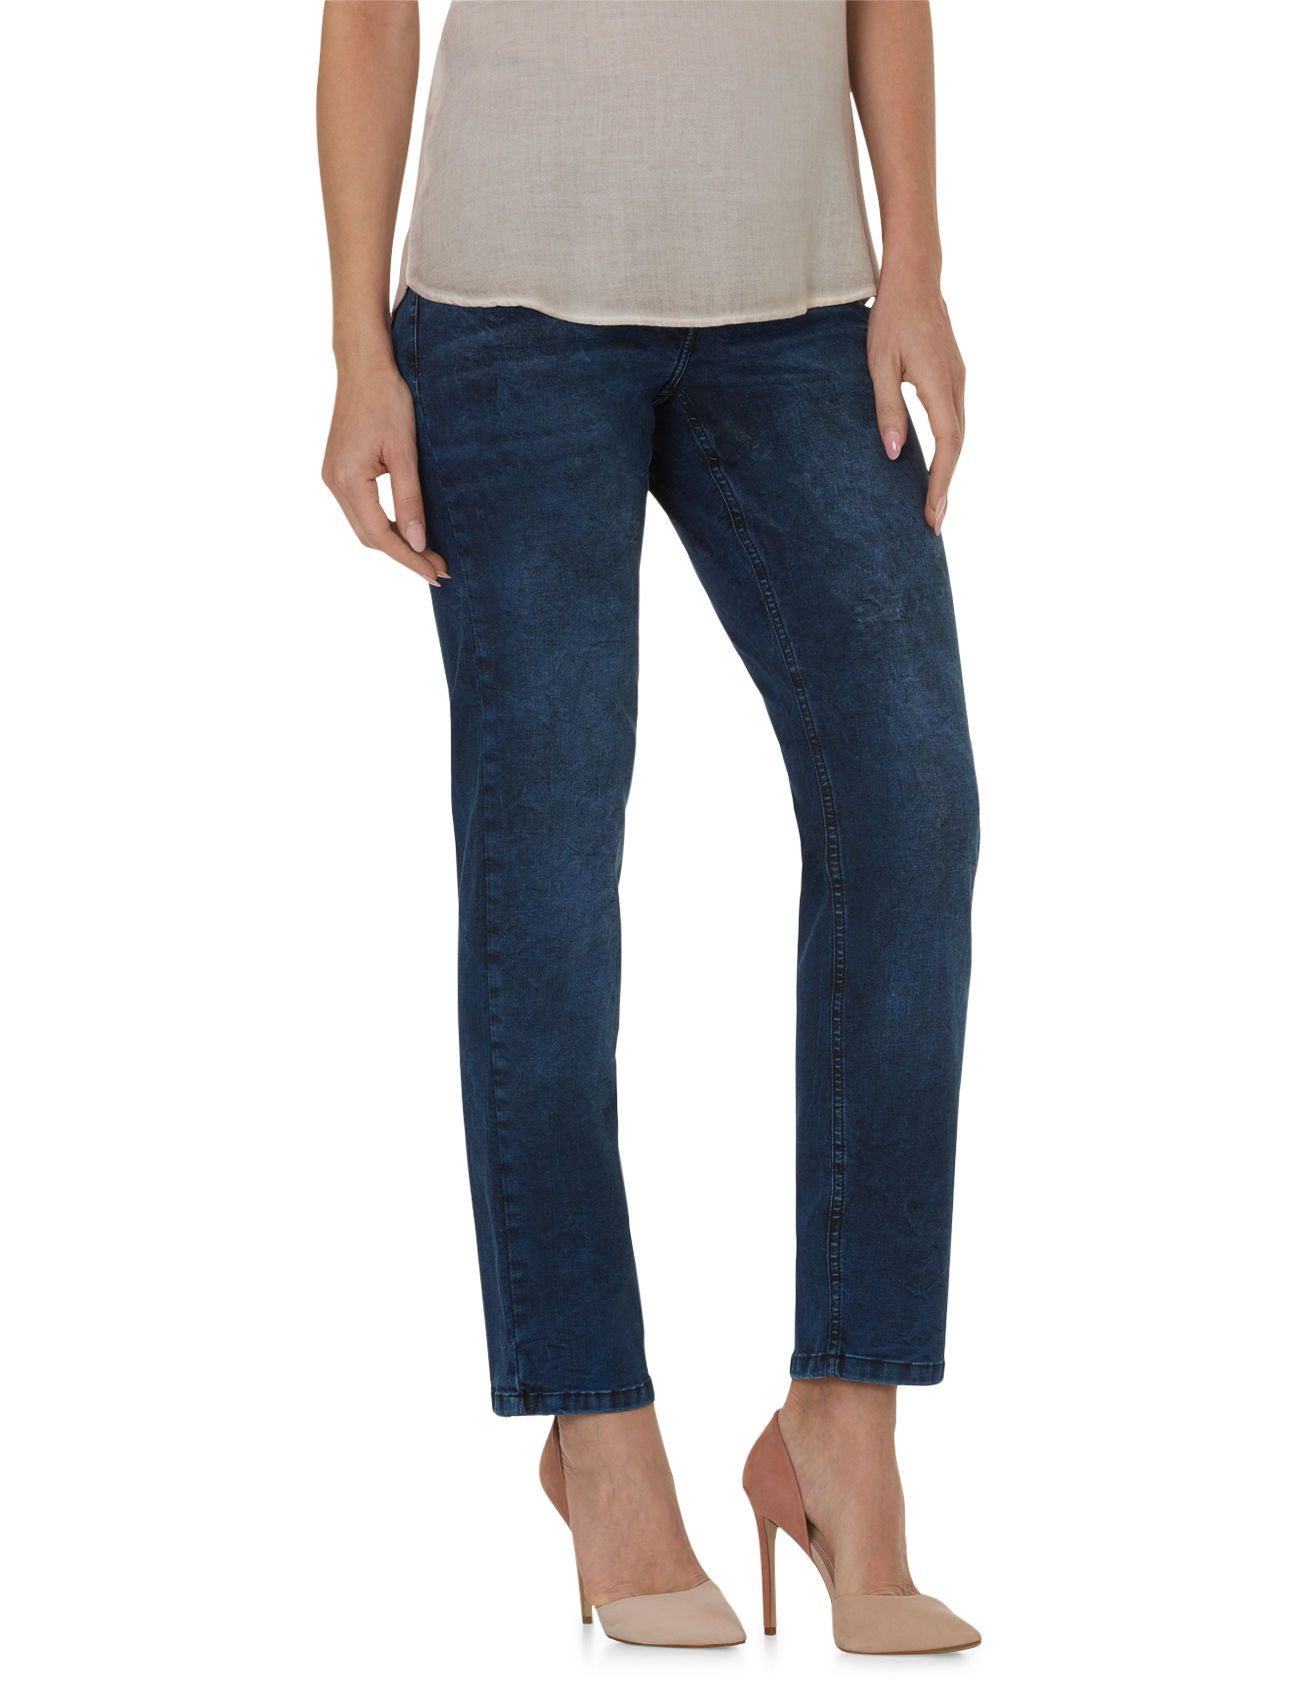 BETTY BARCLAY Basic Jeans mit verkürztem Bein Betty Barclay Dark Blue Denim - Blau